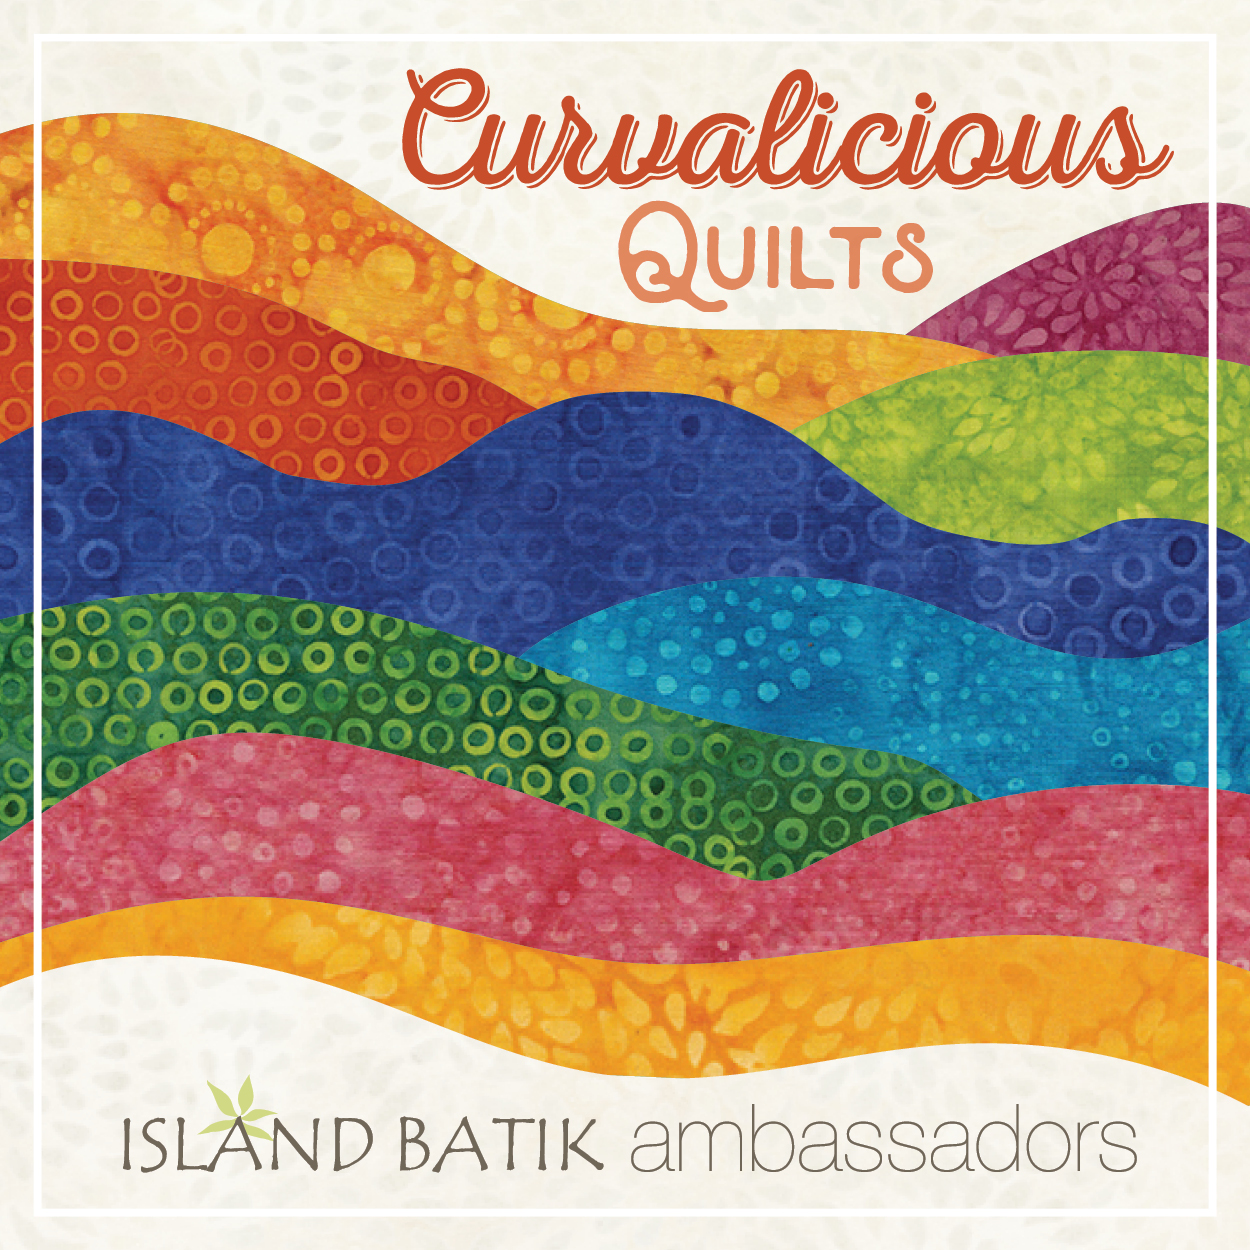 Curvalicious Quilts.jpg